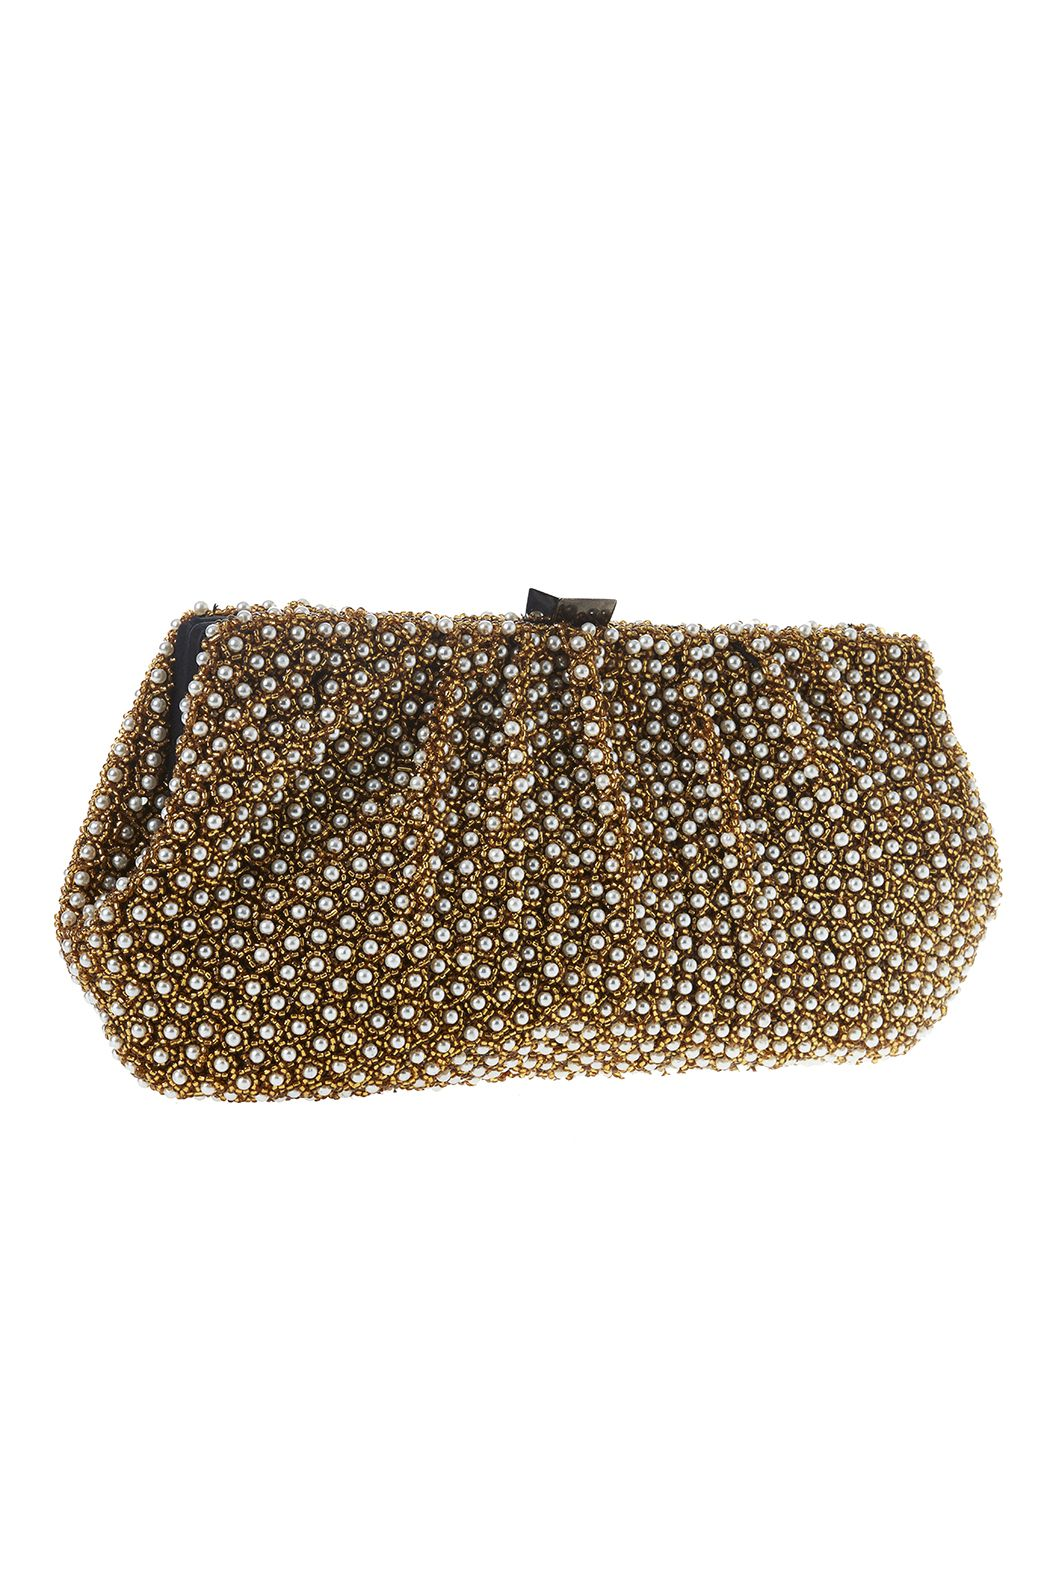 """Small gold beaded clutch withsmall pearlembellishments. Features asquare clasp closurecrossbody strap and one slip interior pocket.  Approx. Measures:10.5"""" W x 5.5""""L.  Gold Beads Pearl Clutch by Santi. Bags - Clutches - Evening New York"""